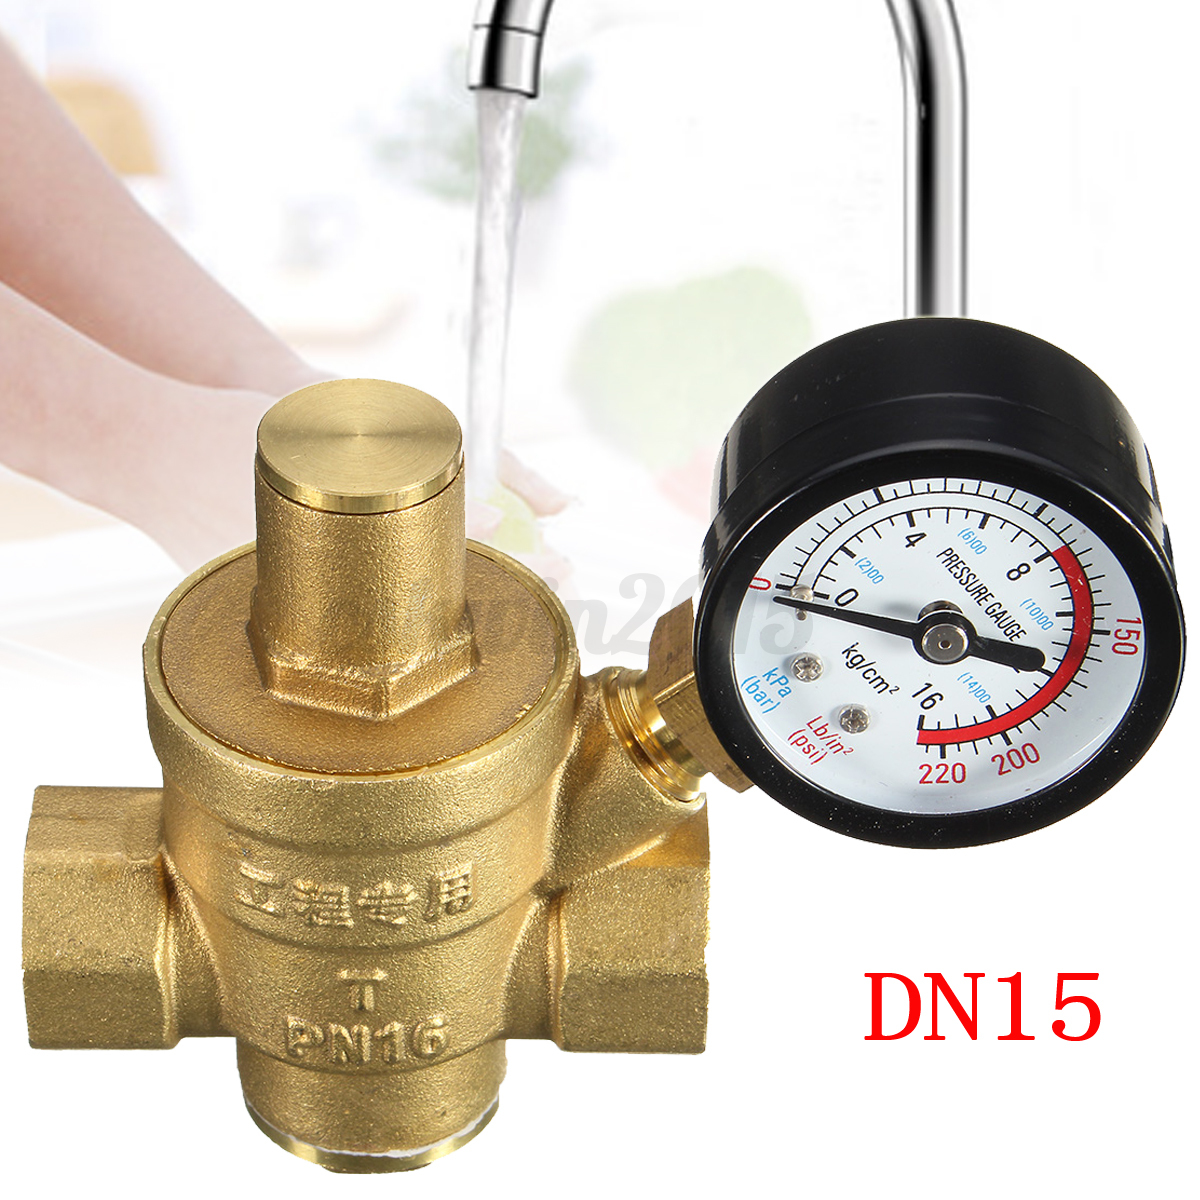 dn15 1 2 brass water pressure adjustable regulator reducing with gauge meter ebay. Black Bedroom Furniture Sets. Home Design Ideas